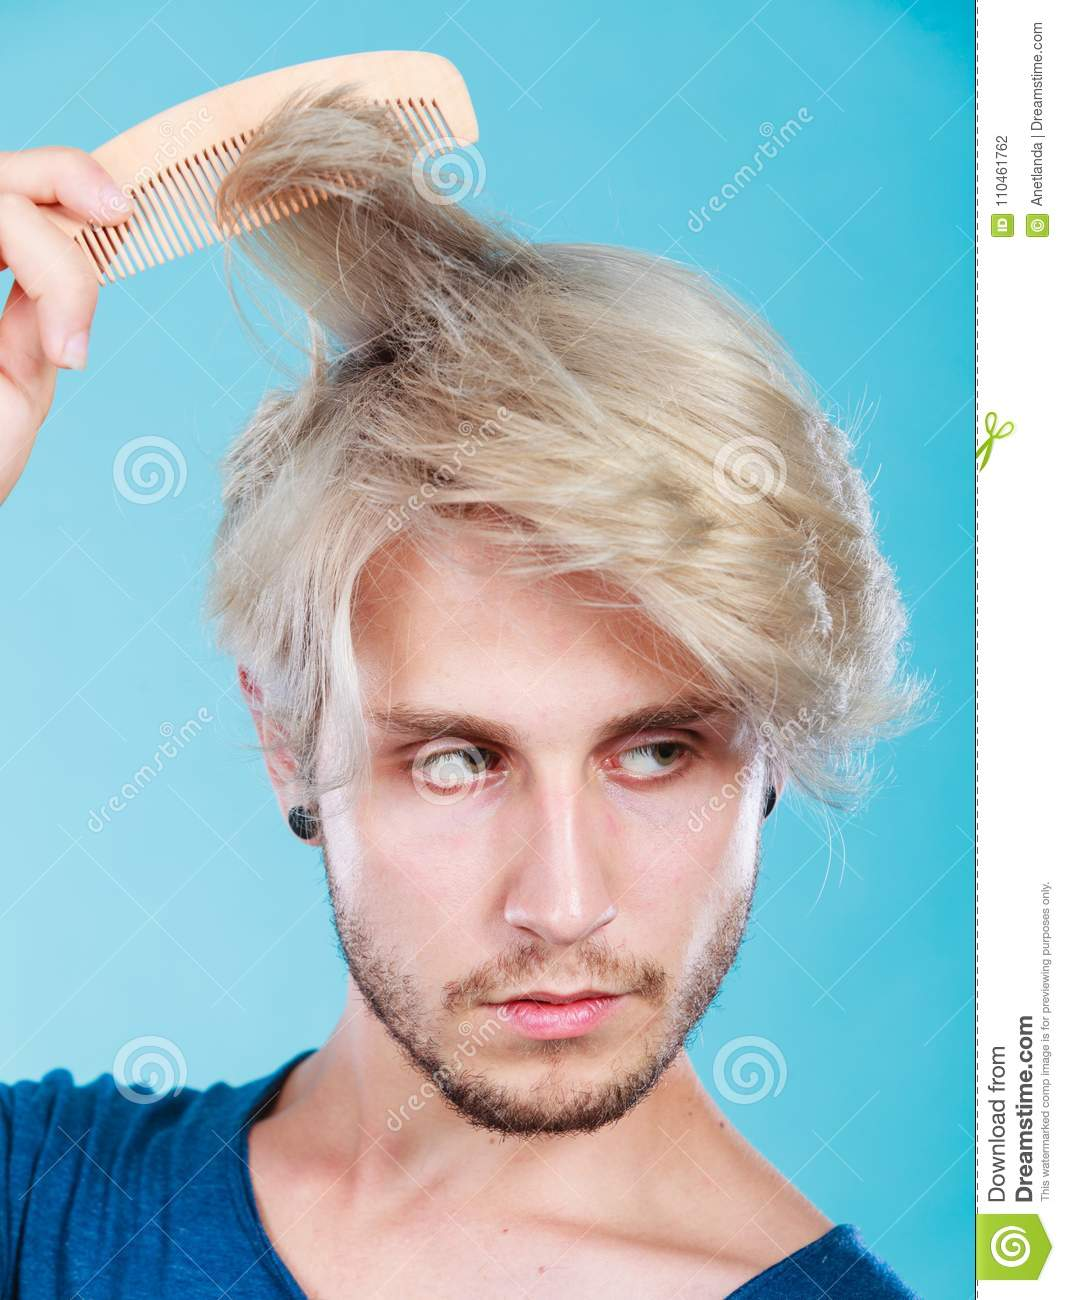 Man With Stylish Haircut Combing His Hair Stock Photo